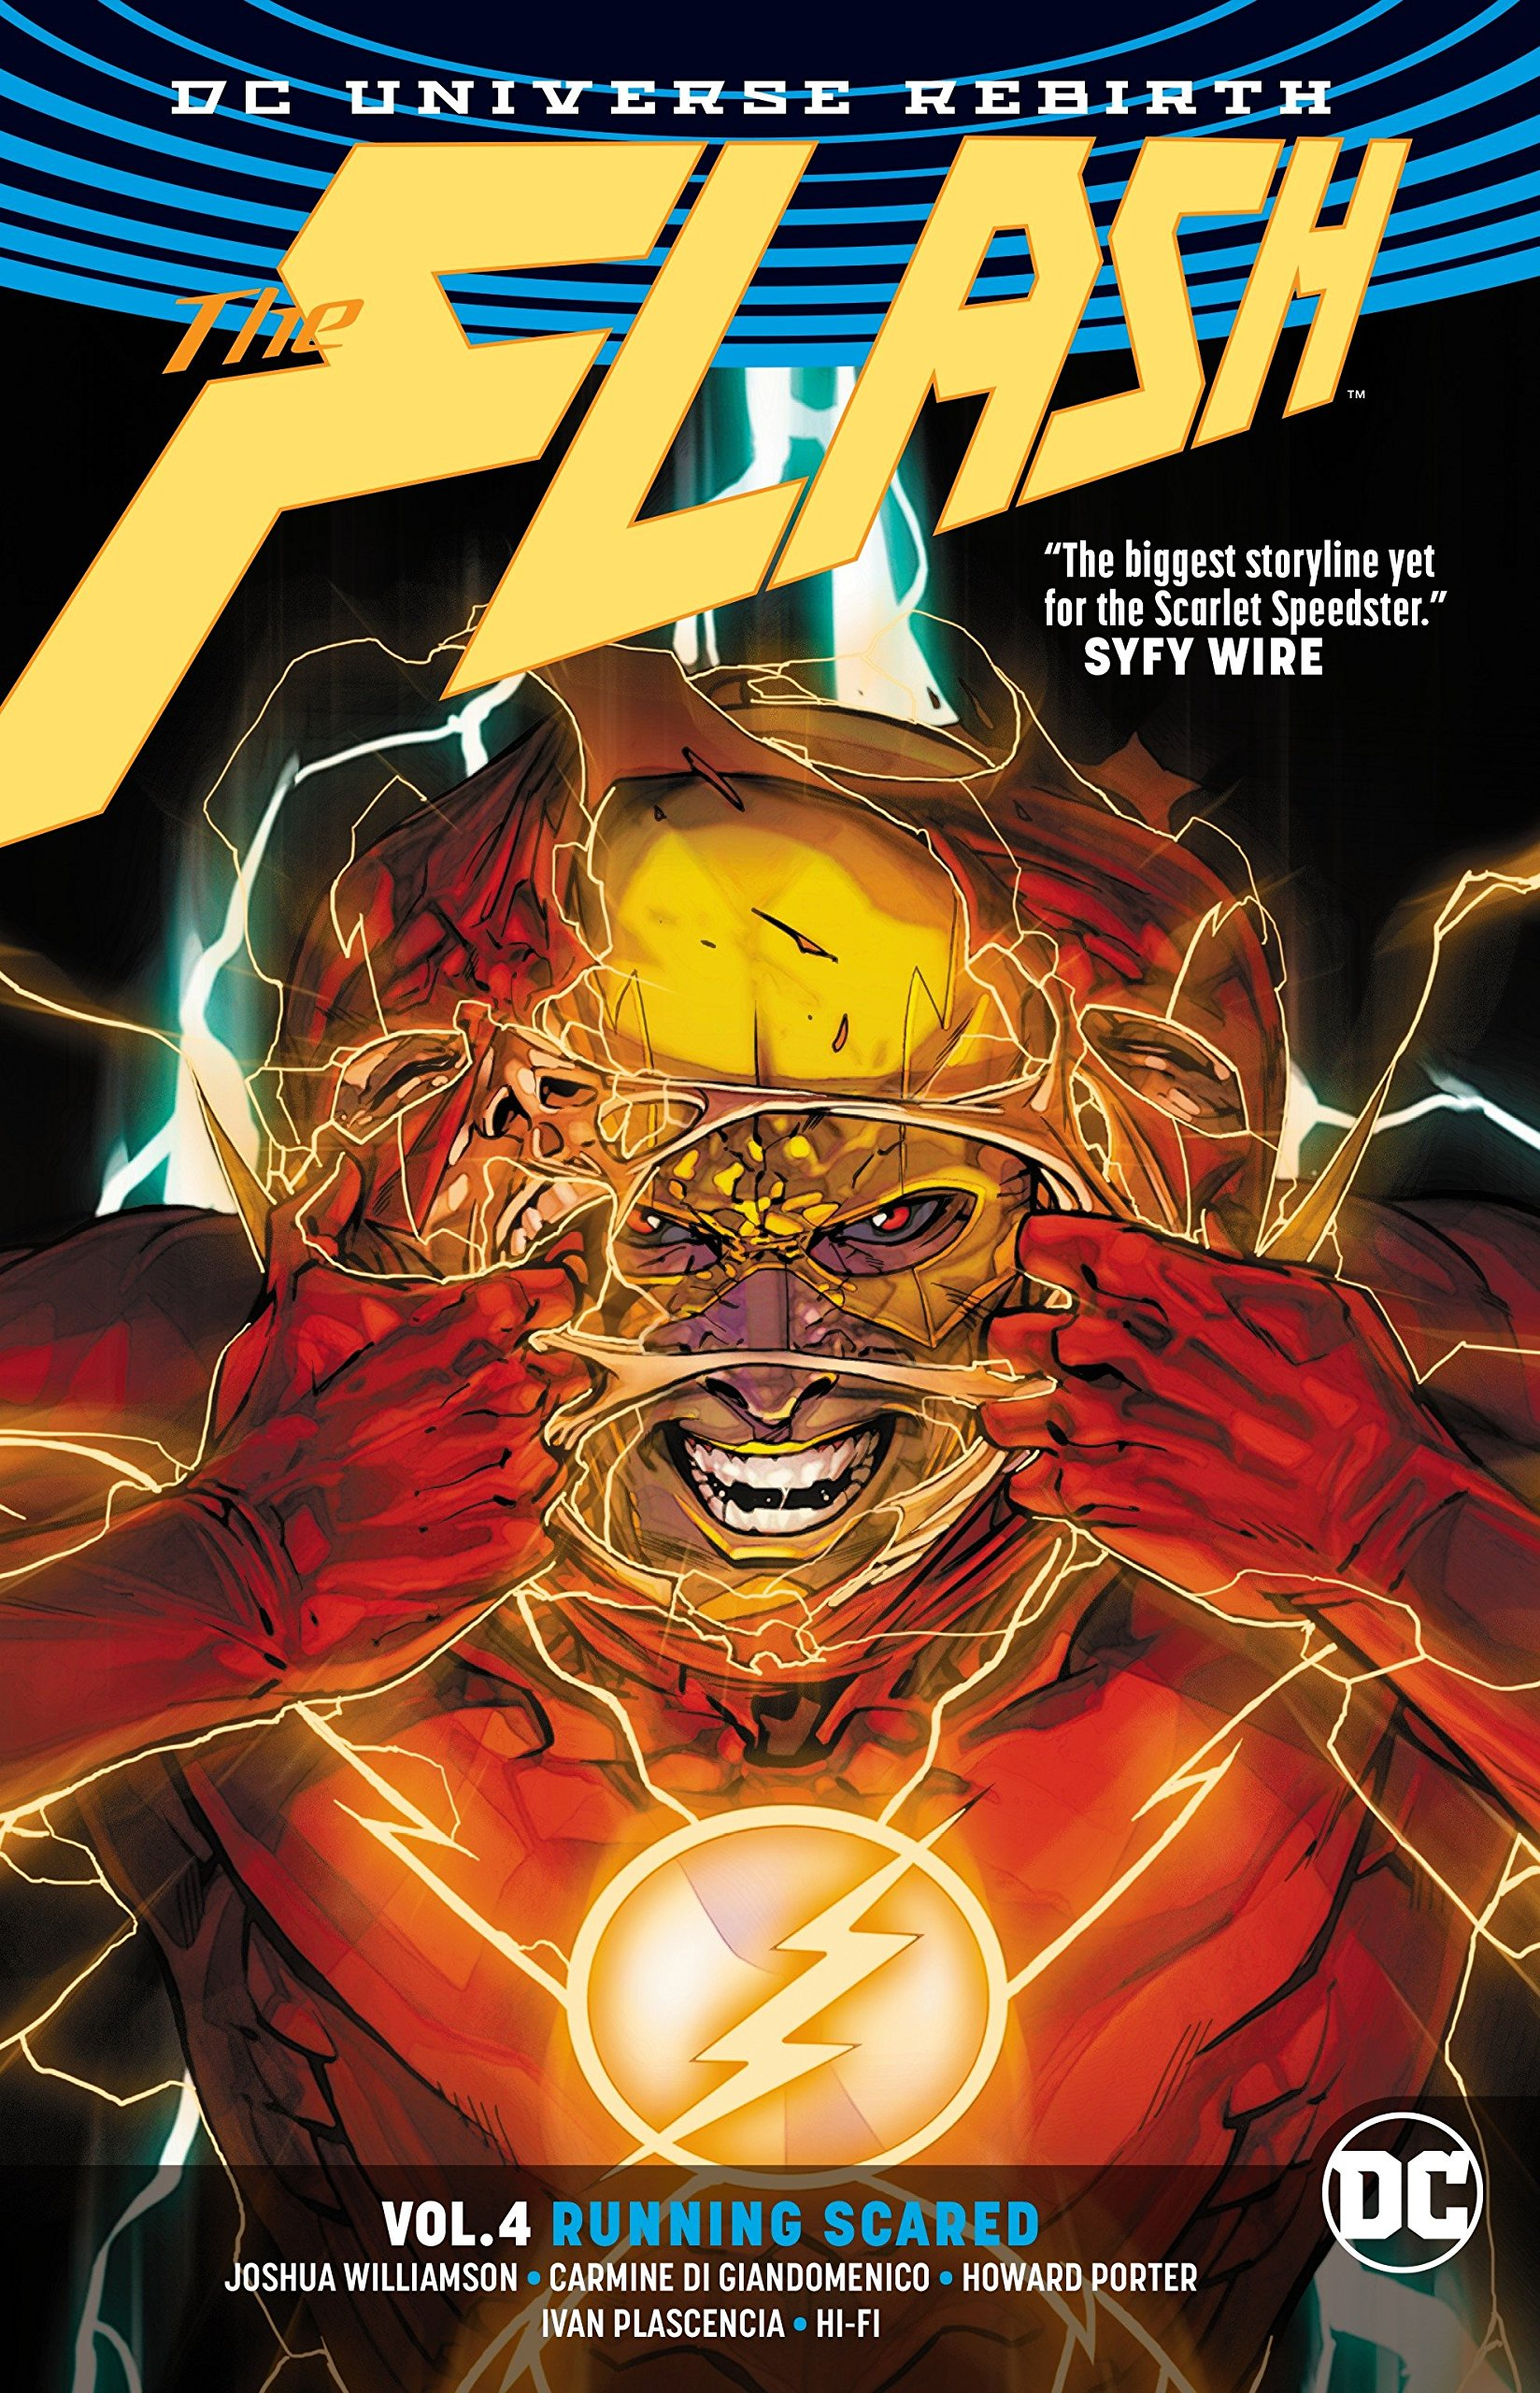 The Flash Vol. 4: Running Scared (Rebirth) by DC Comics